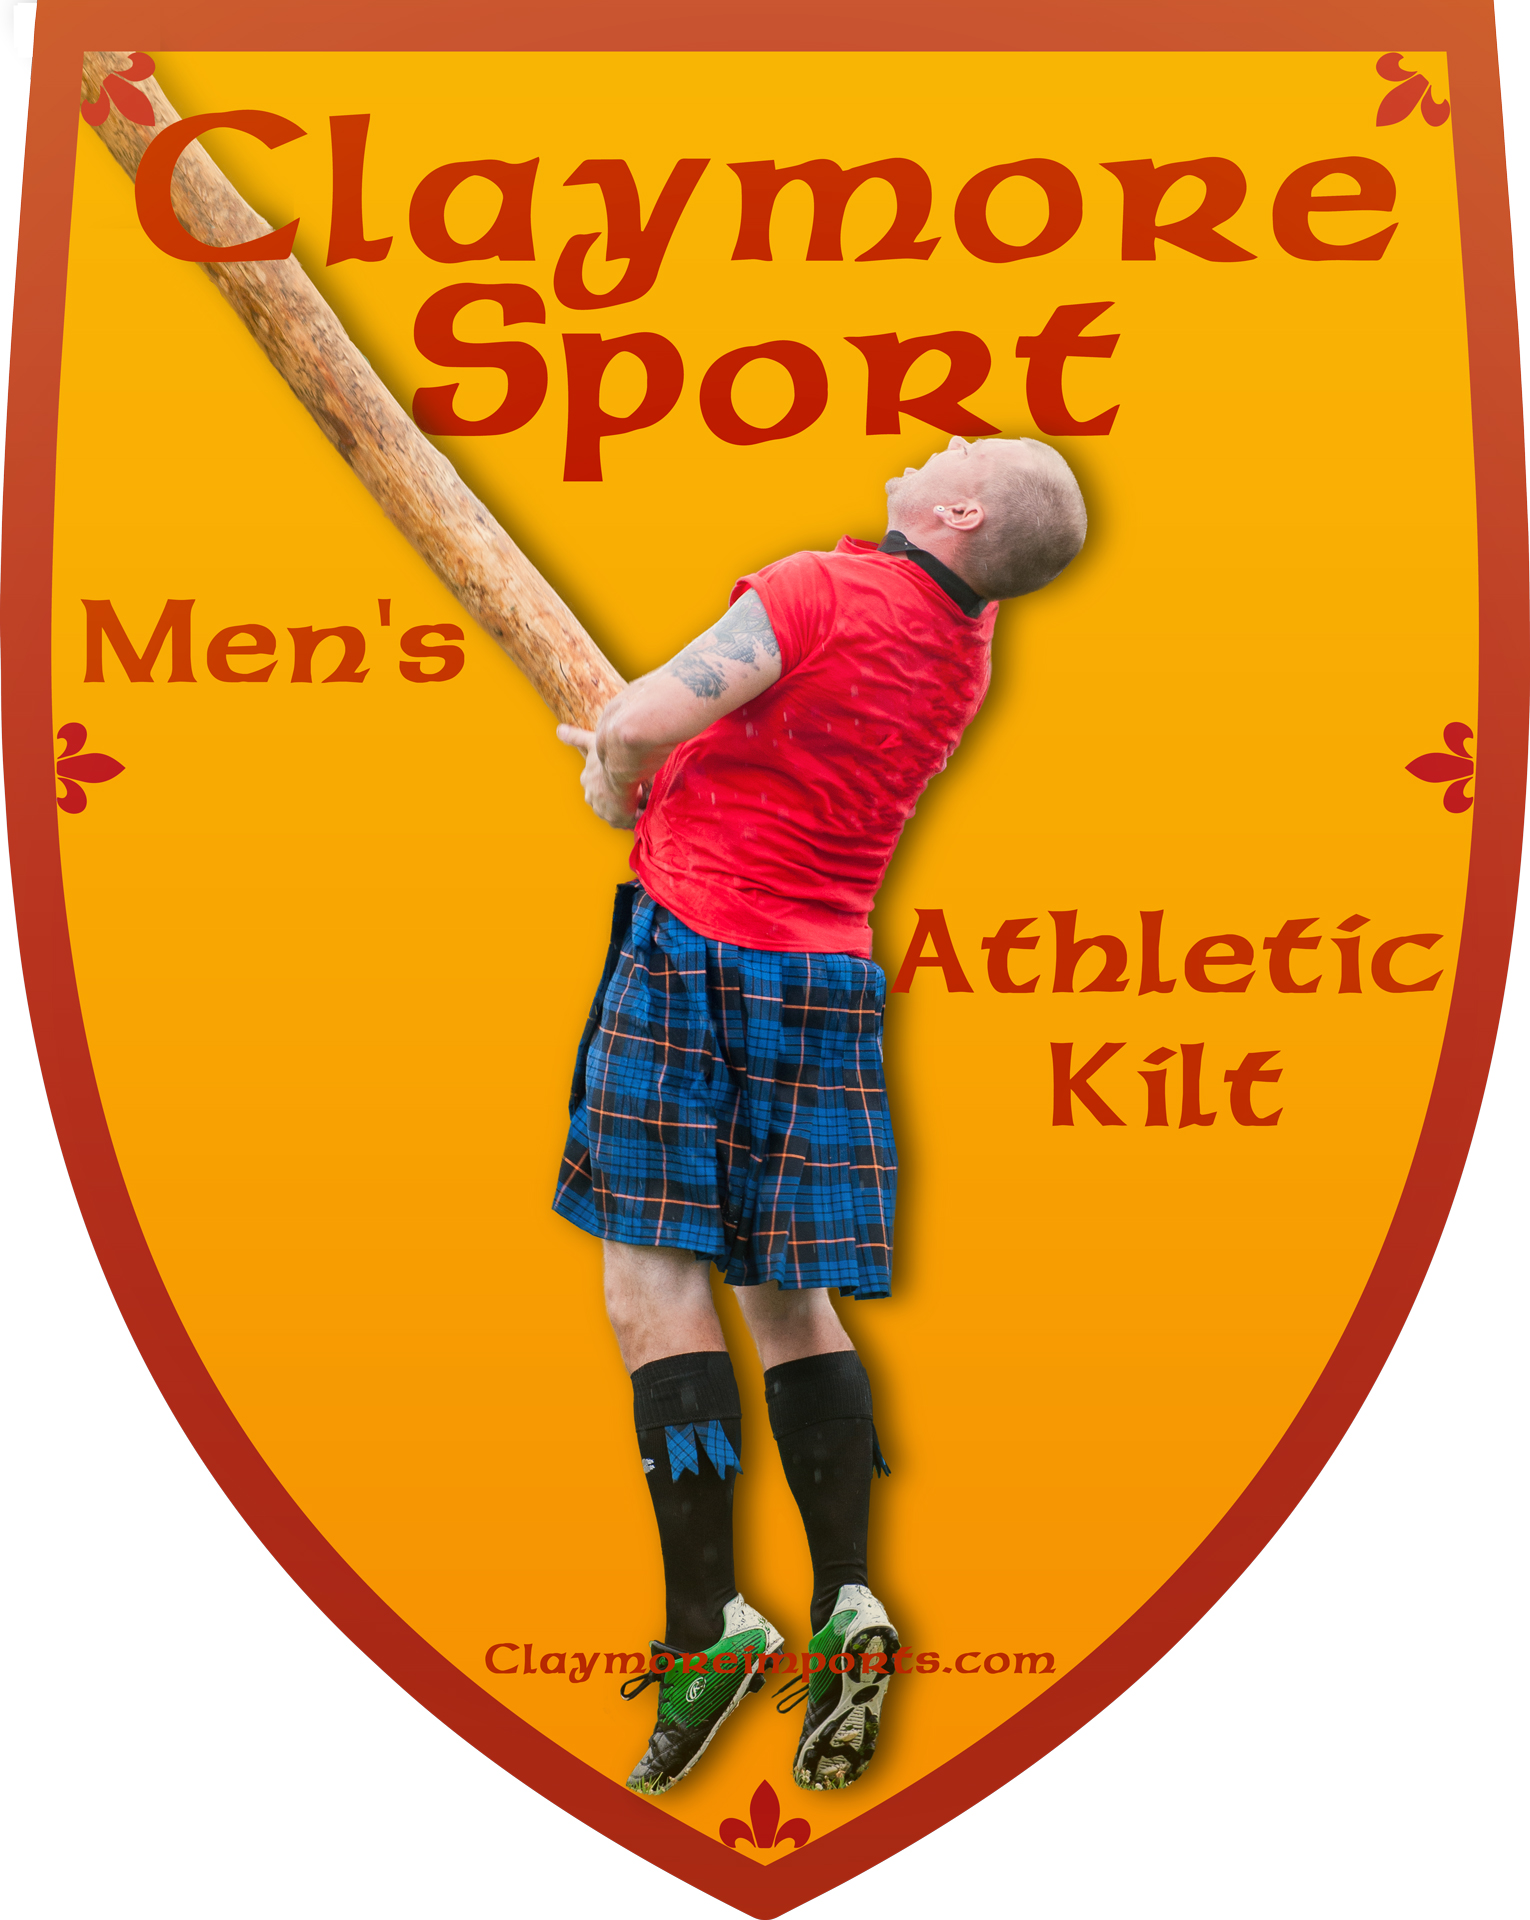 claymore-sport-hang-tag-mens-web.jpg